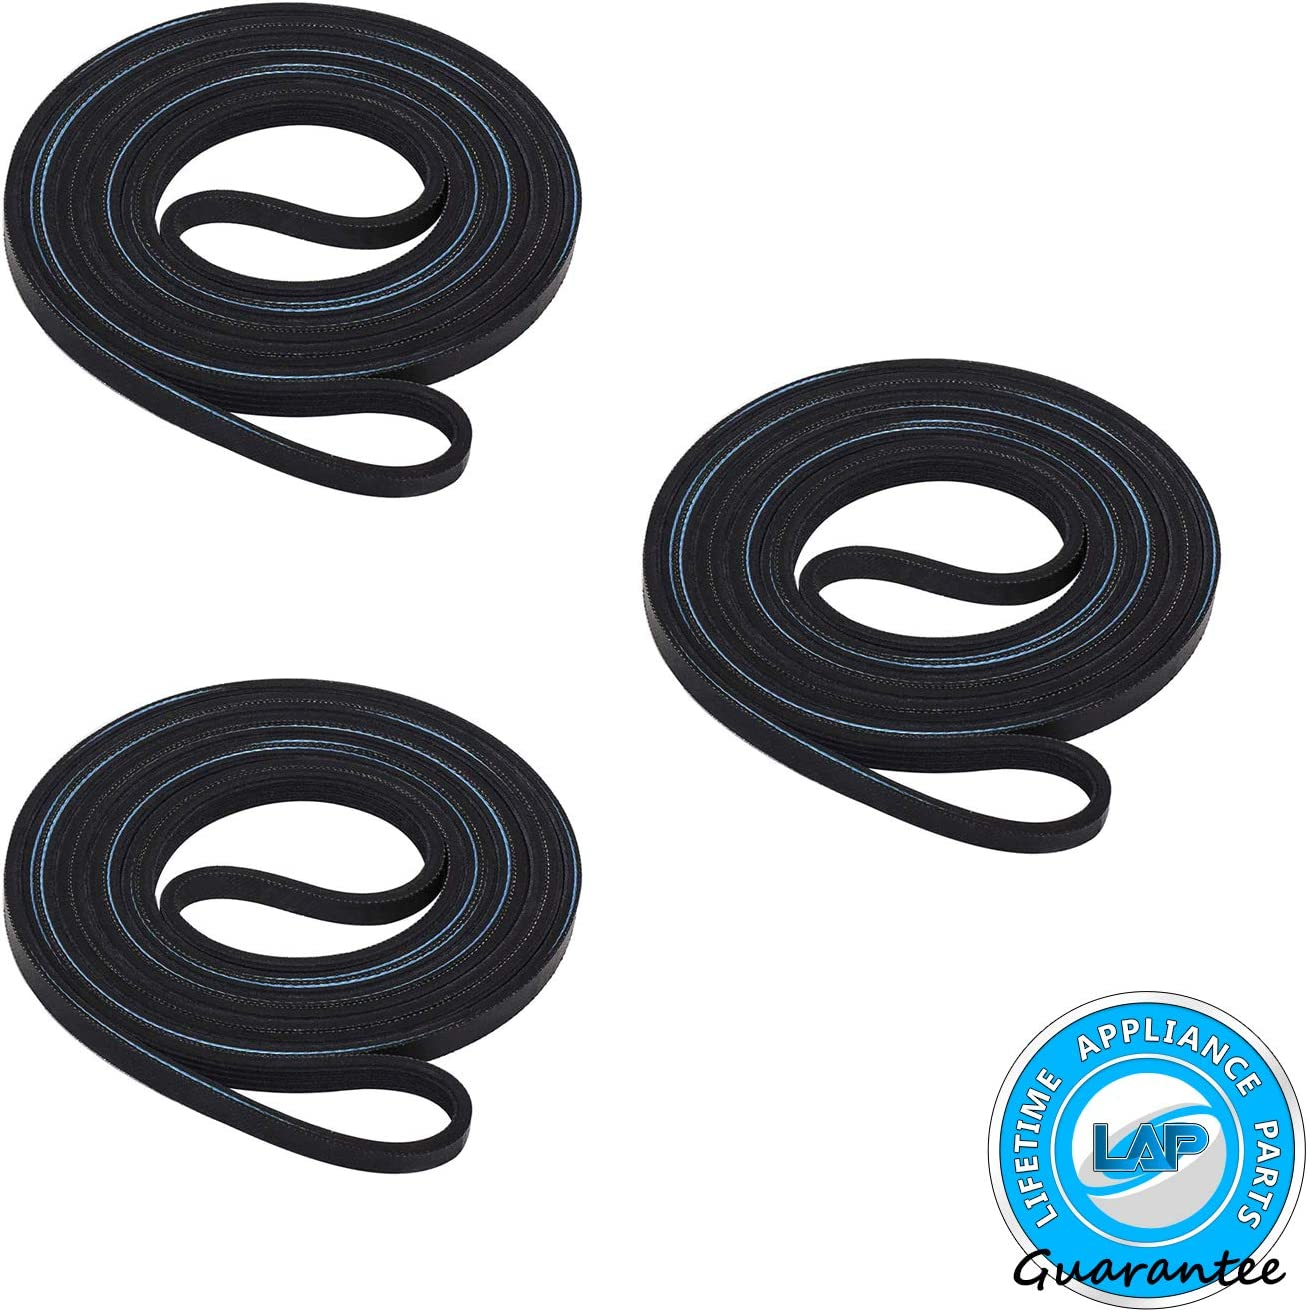 Supplying Demand 341241 691366 Dryer Belt /& Pulley Kit Fits AP2946843 W10131364